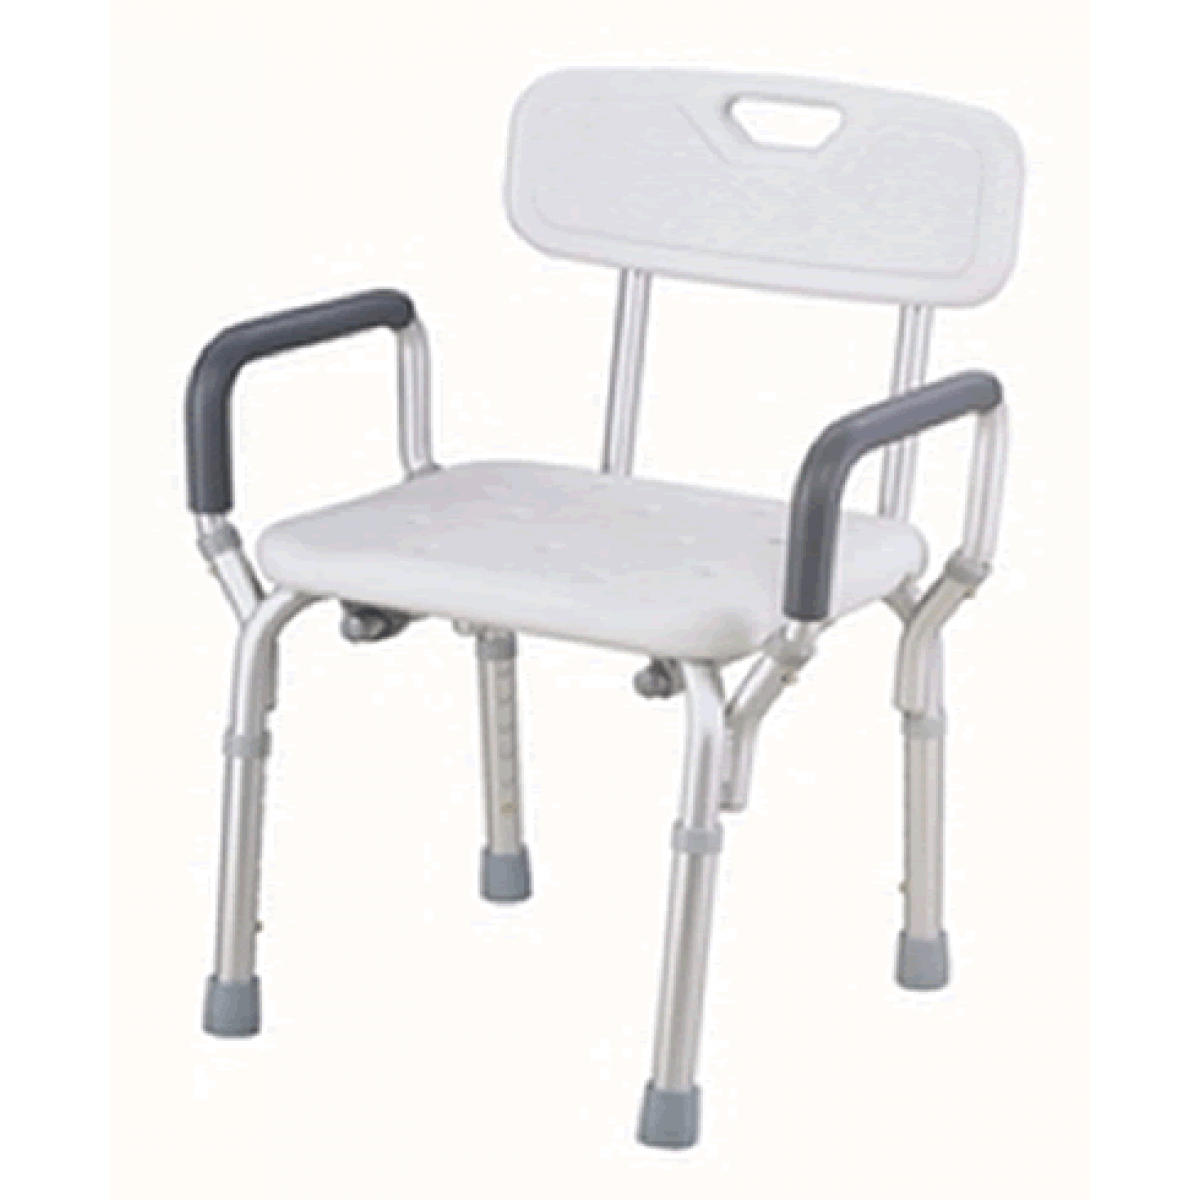 shower chair for elderly singapore target gaming chairs merits bath bench with arms on sale